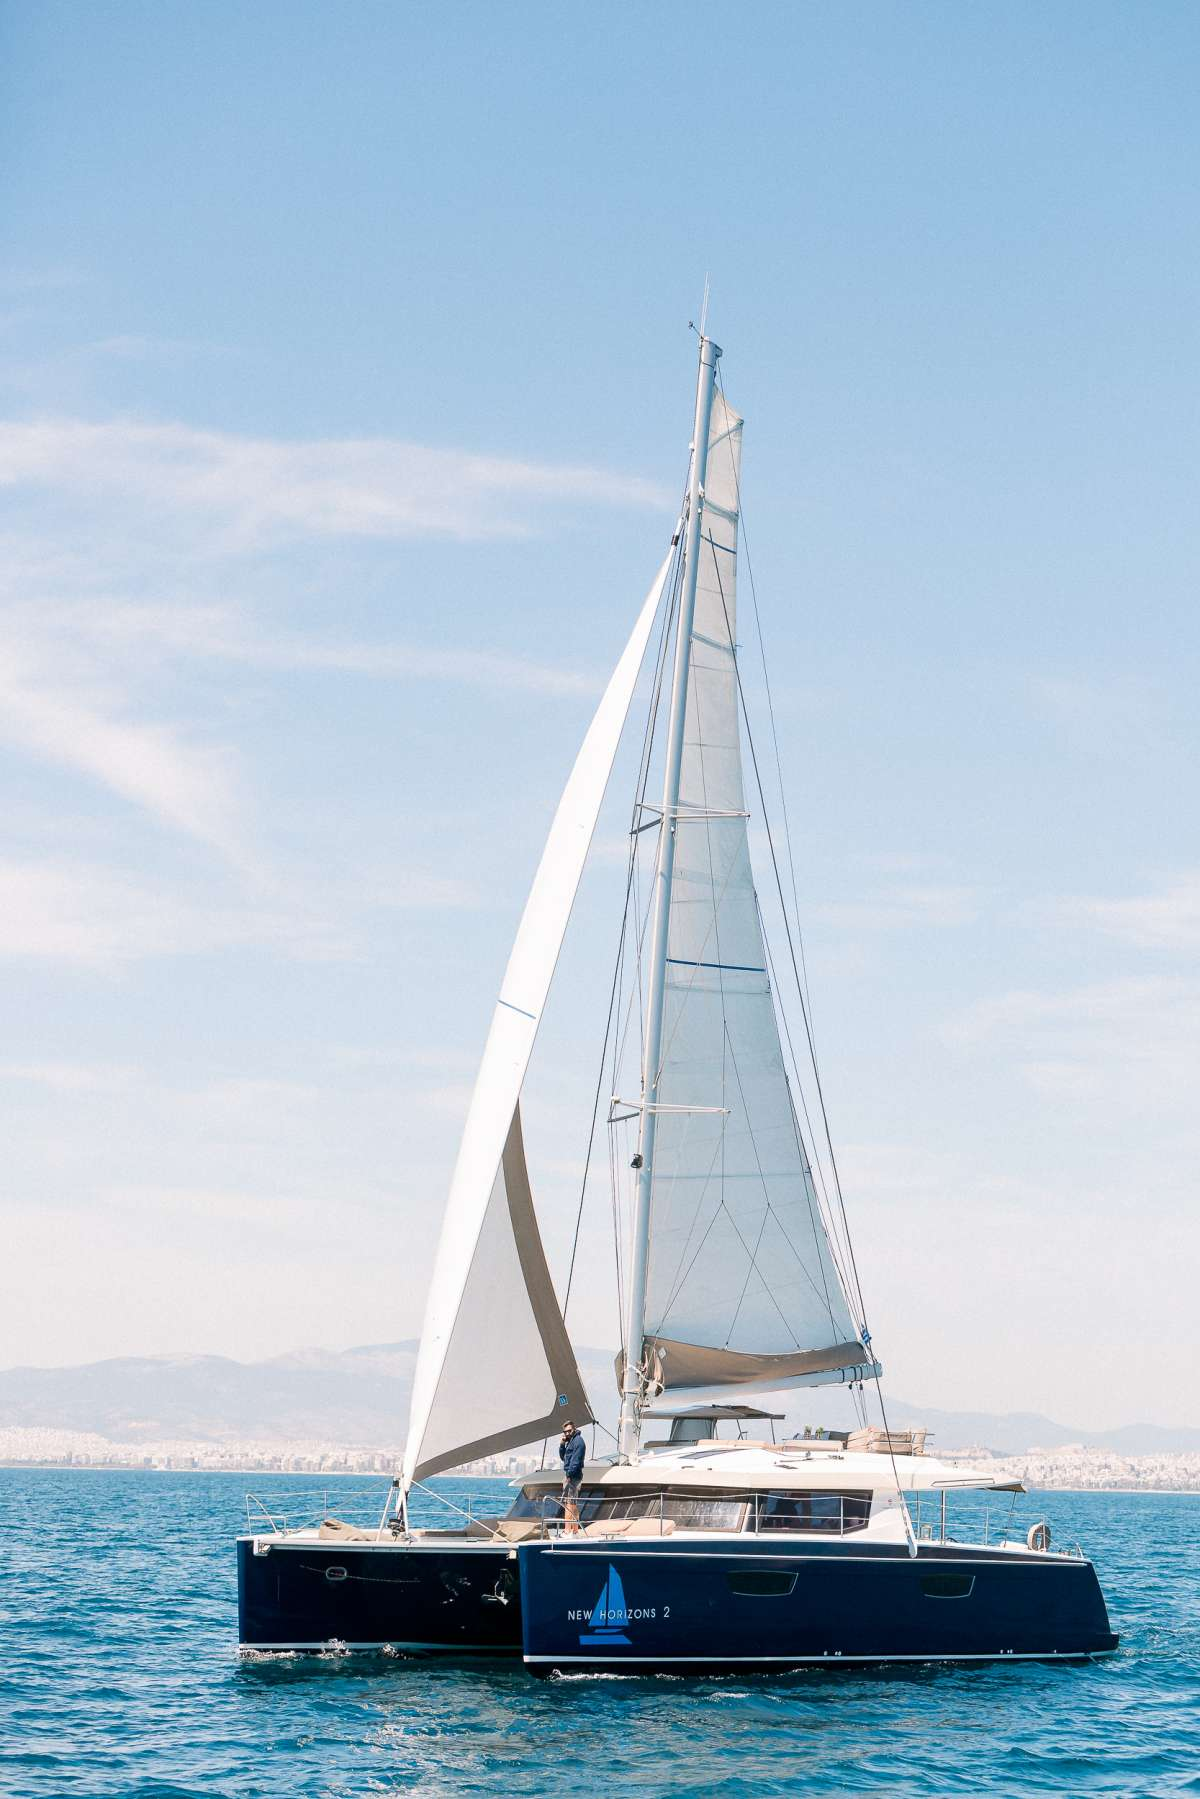 Catamaran NEW HORIZONS 2